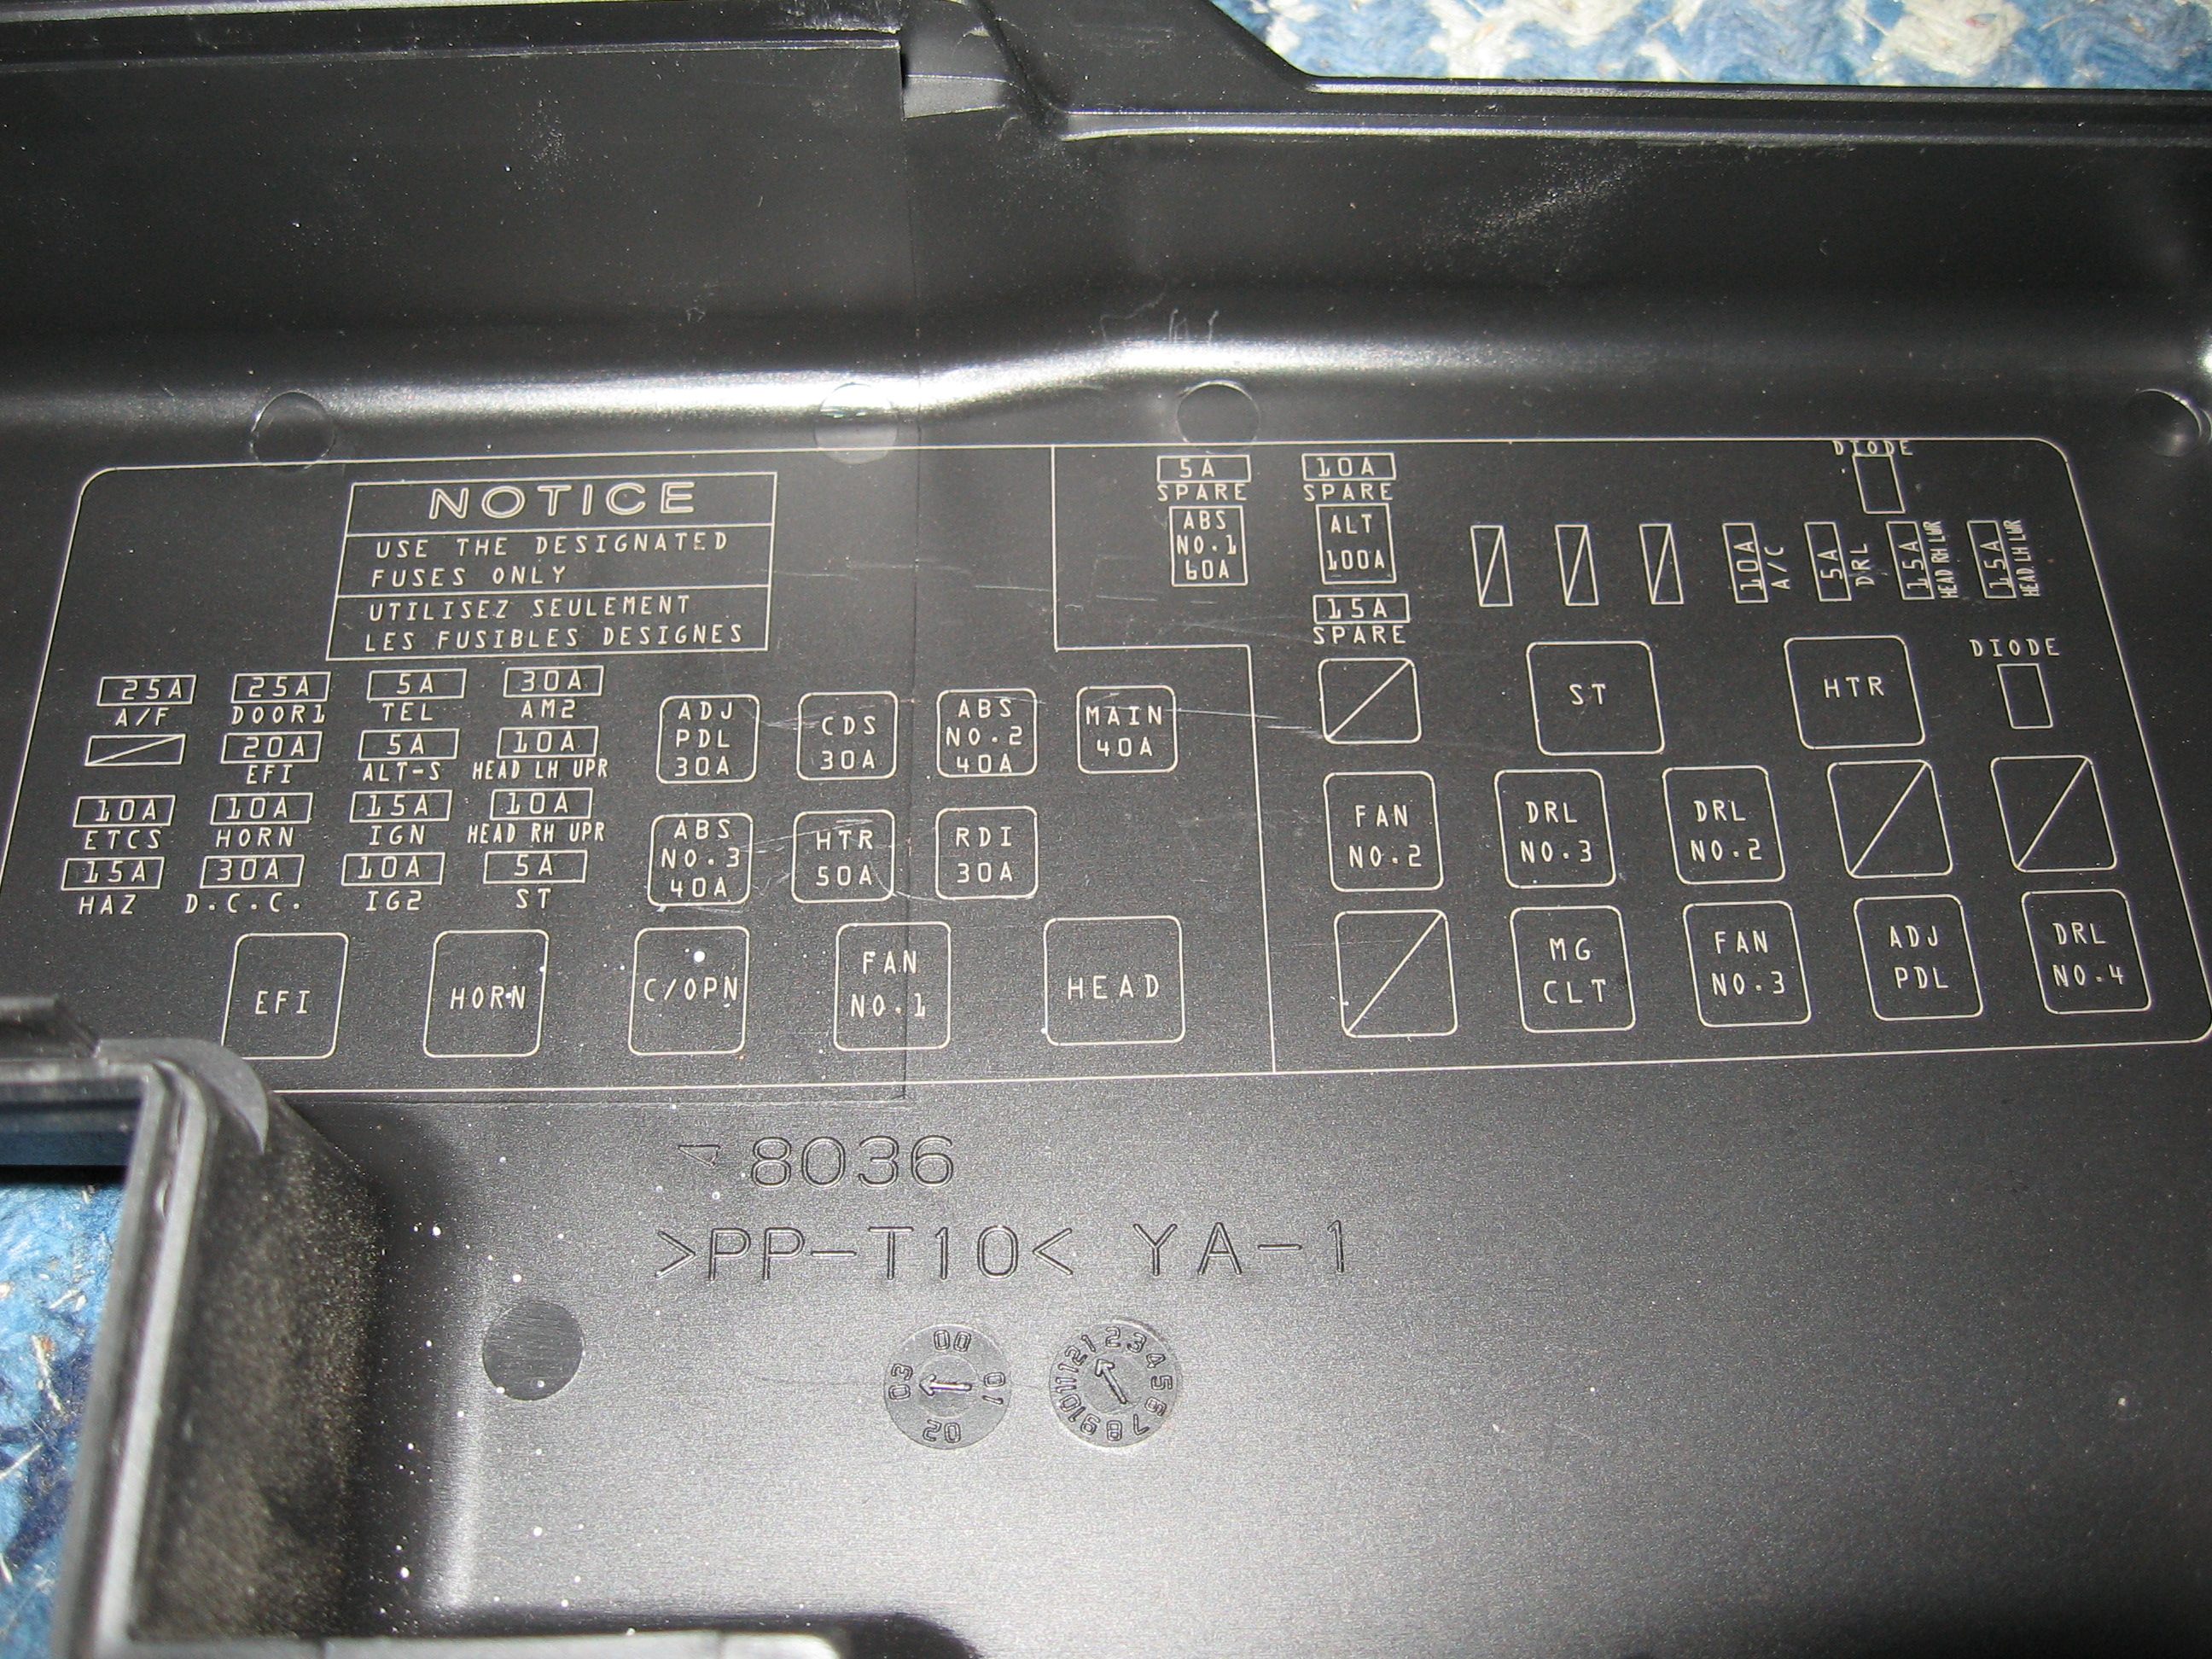 03 Sienna Fuse Box Great Design Of Wiring Diagram 2004 Toyota Get Free Image About Supply Air Graphics